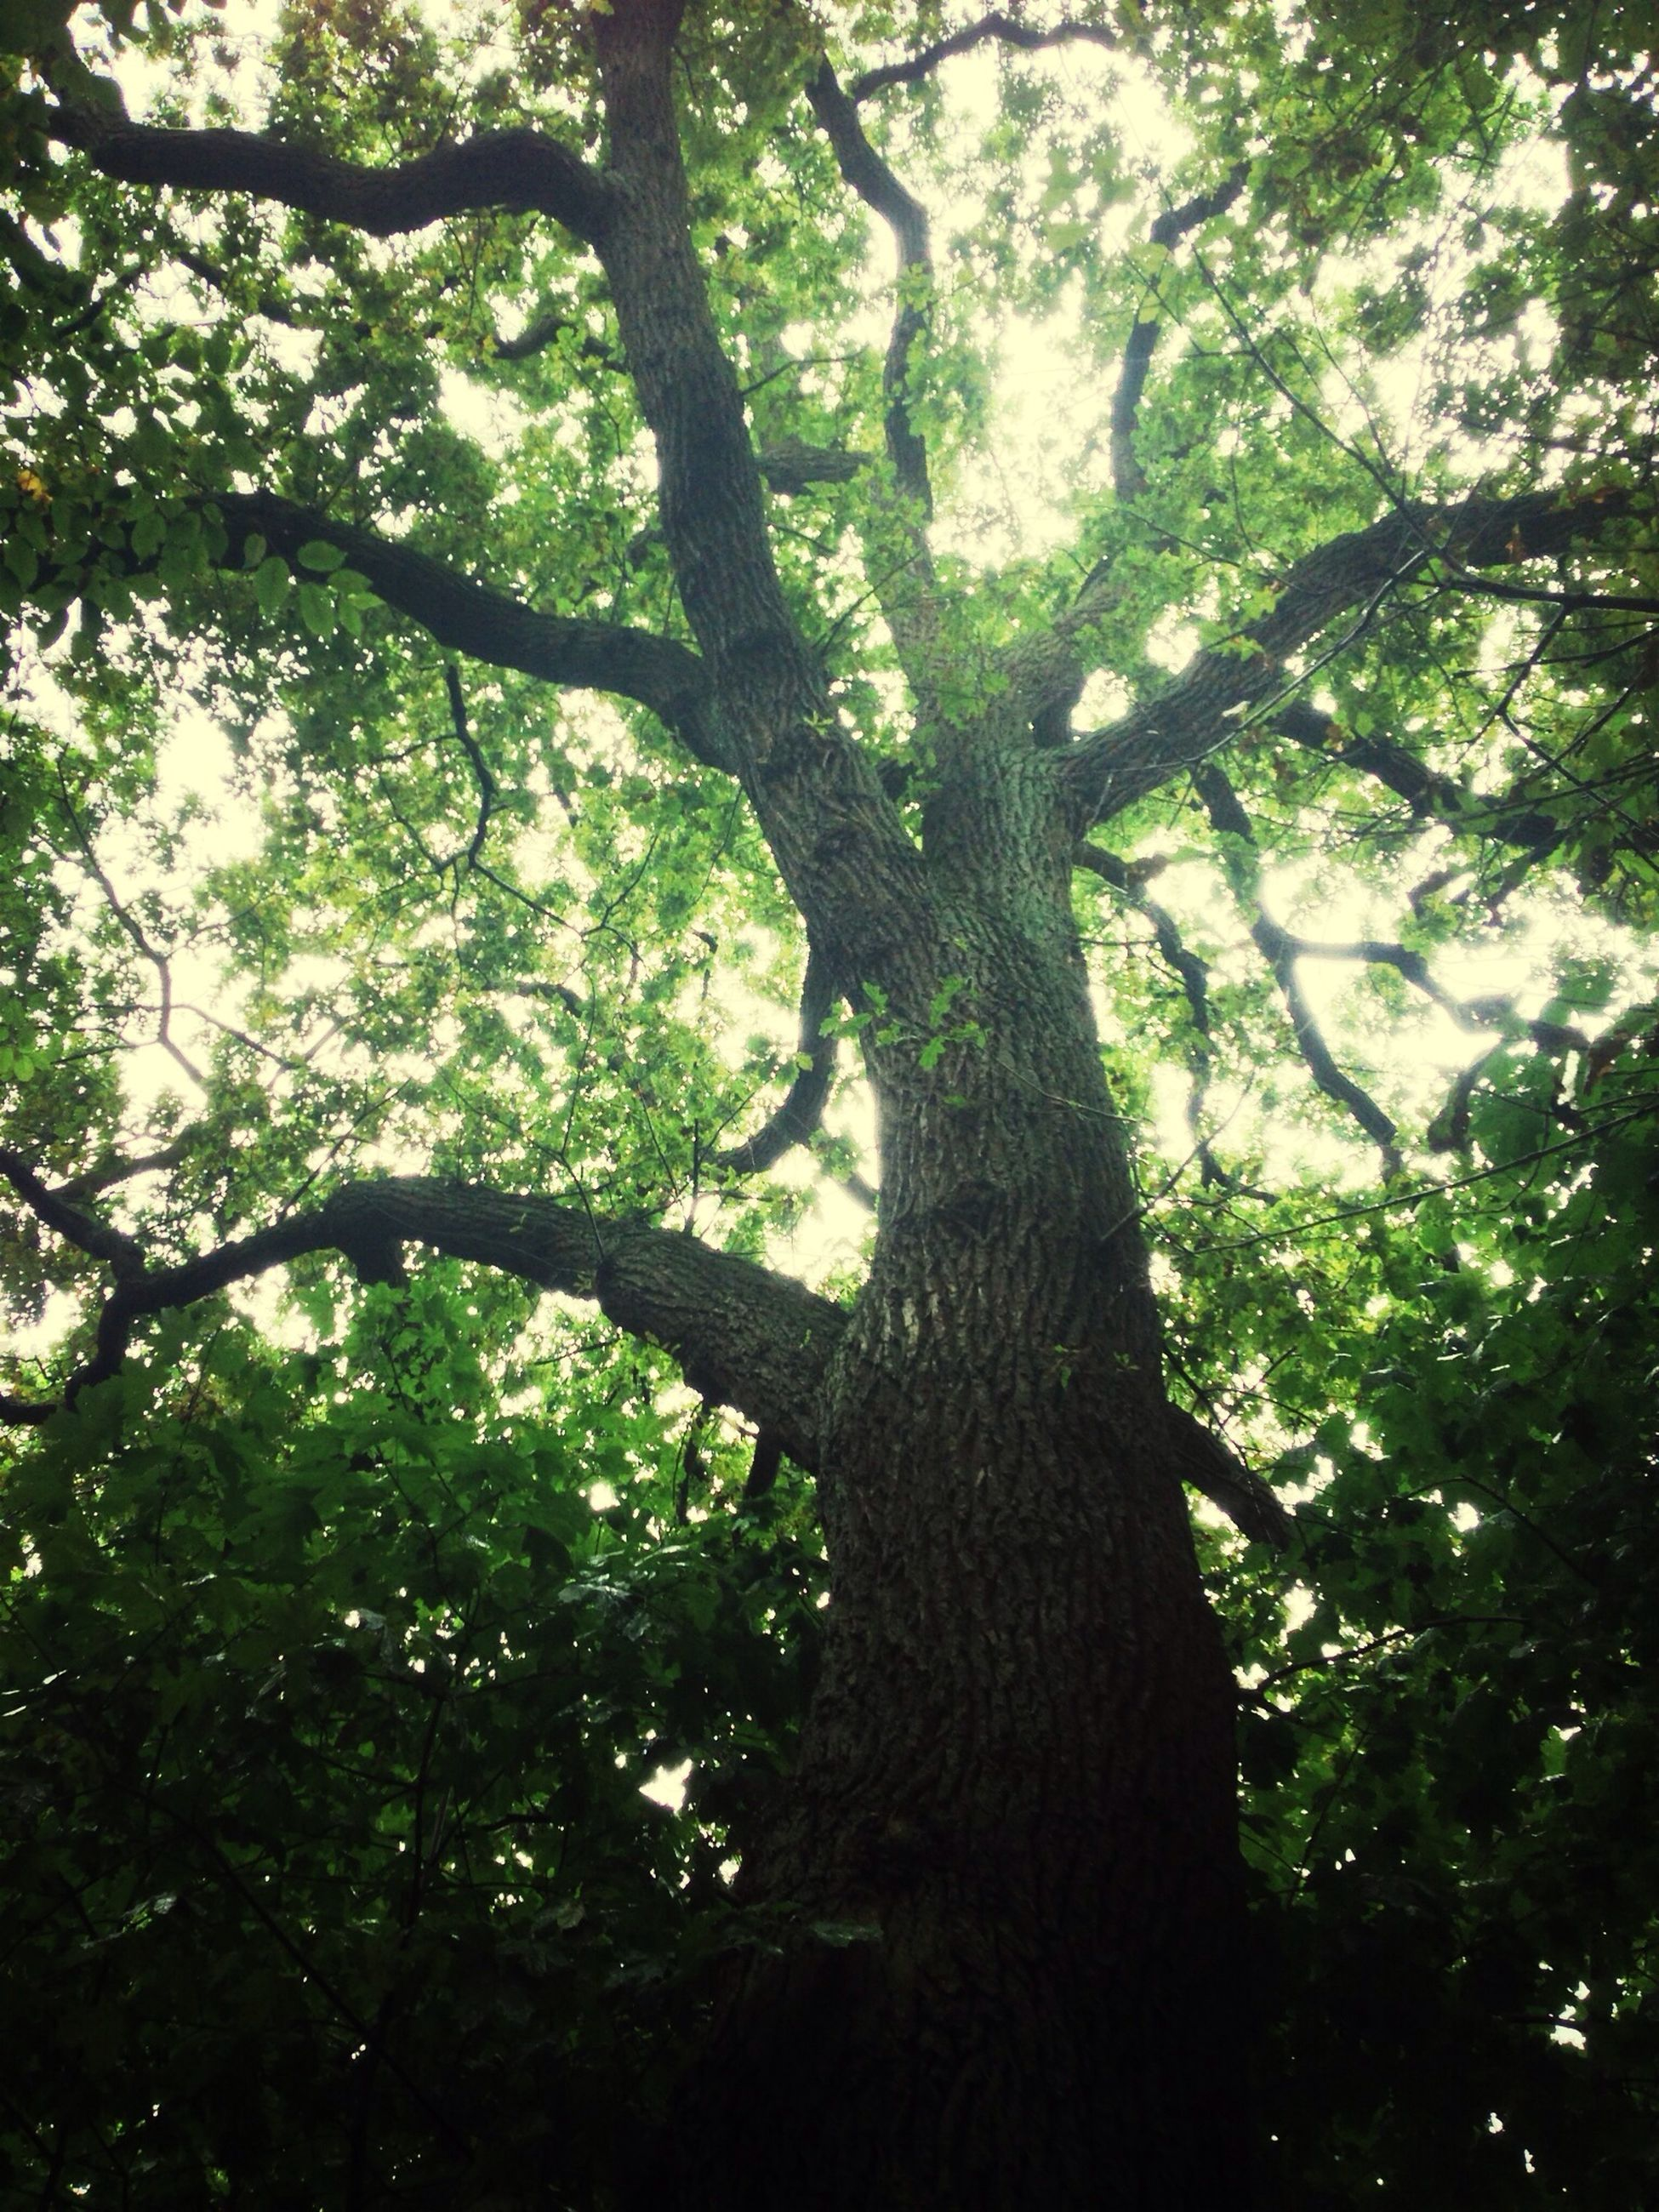 tree, tree trunk, growth, low angle view, branch, nature, forest, tranquility, beauty in nature, green color, day, woodland, outdoors, tranquil scene, no people, sunlight, scenics, sky, leaf, growing